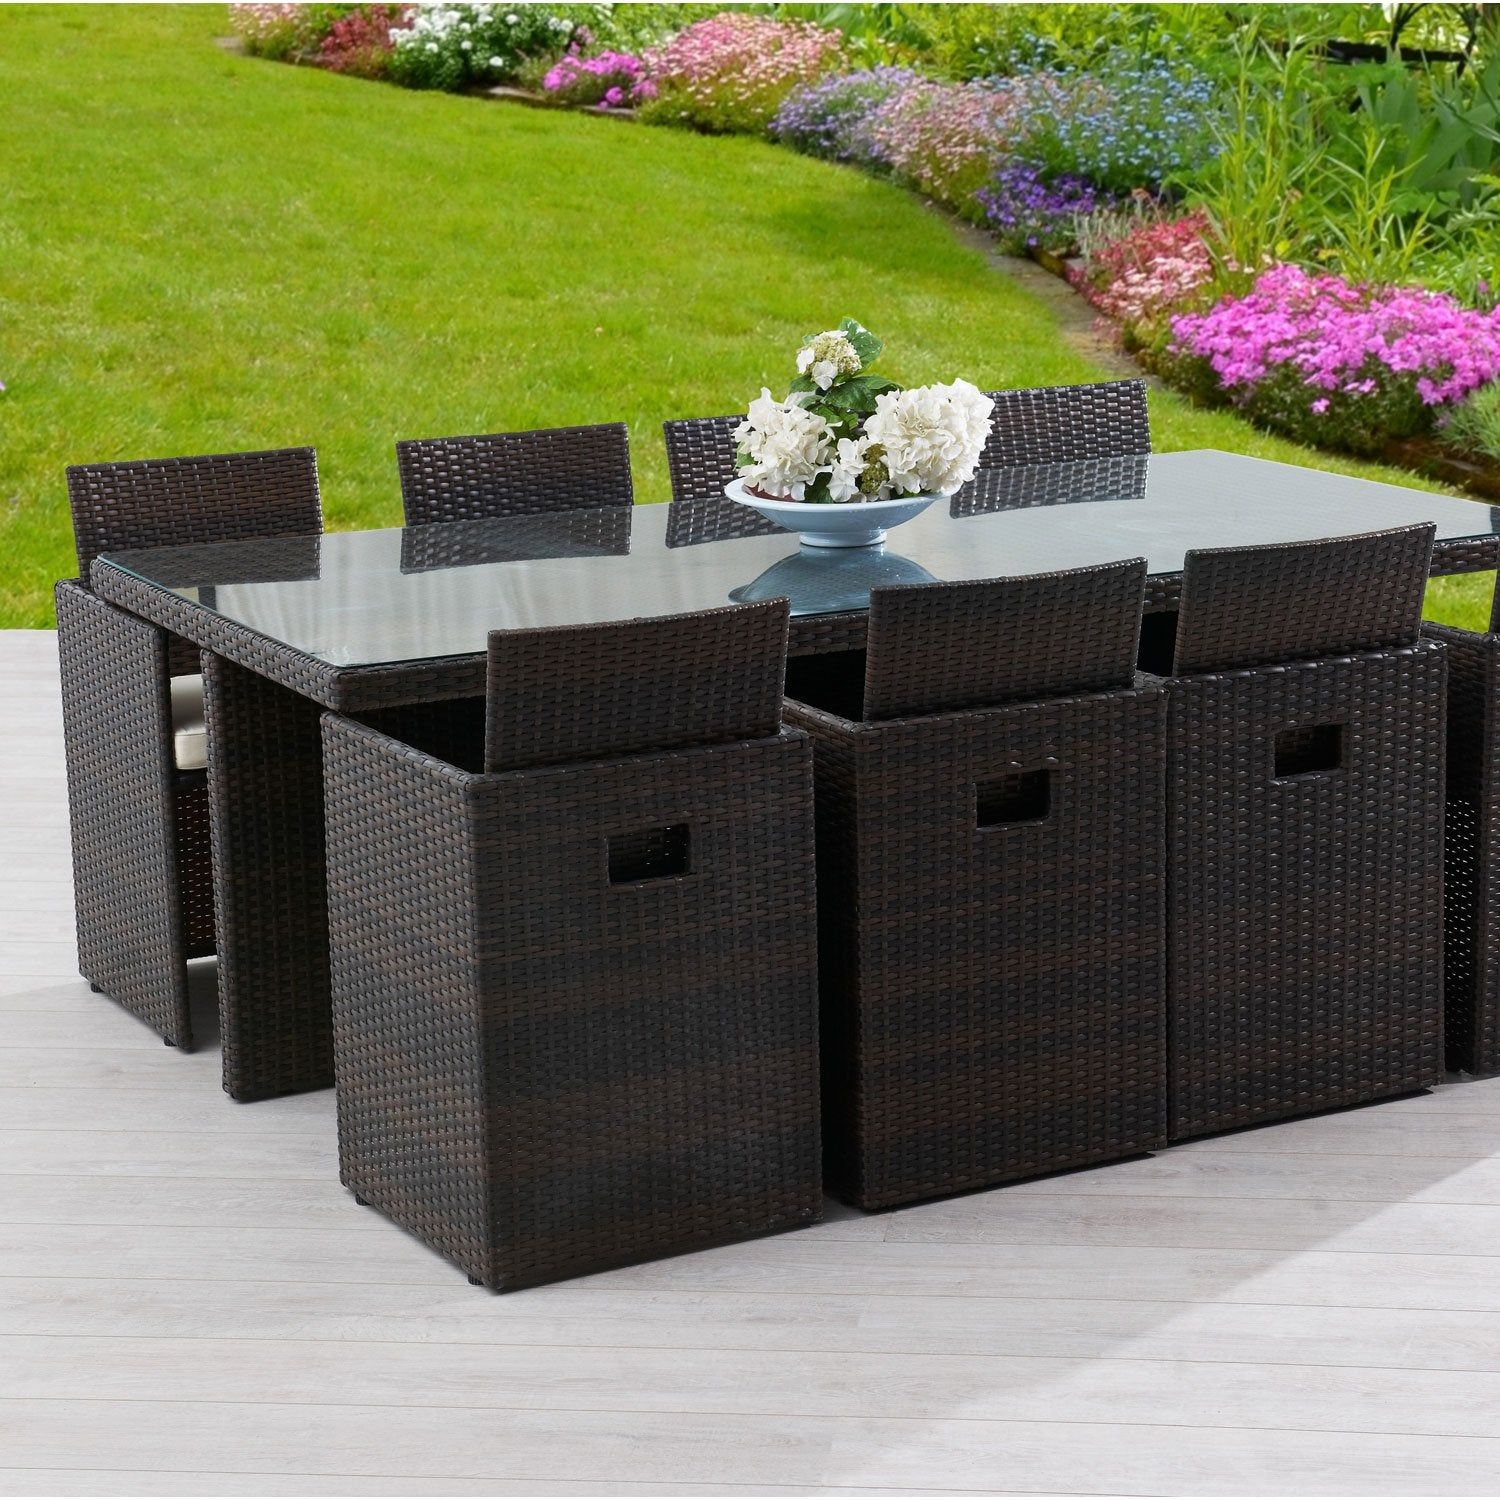 salon de jardin encastrable r sine tress e marron 8. Black Bedroom Furniture Sets. Home Design Ideas